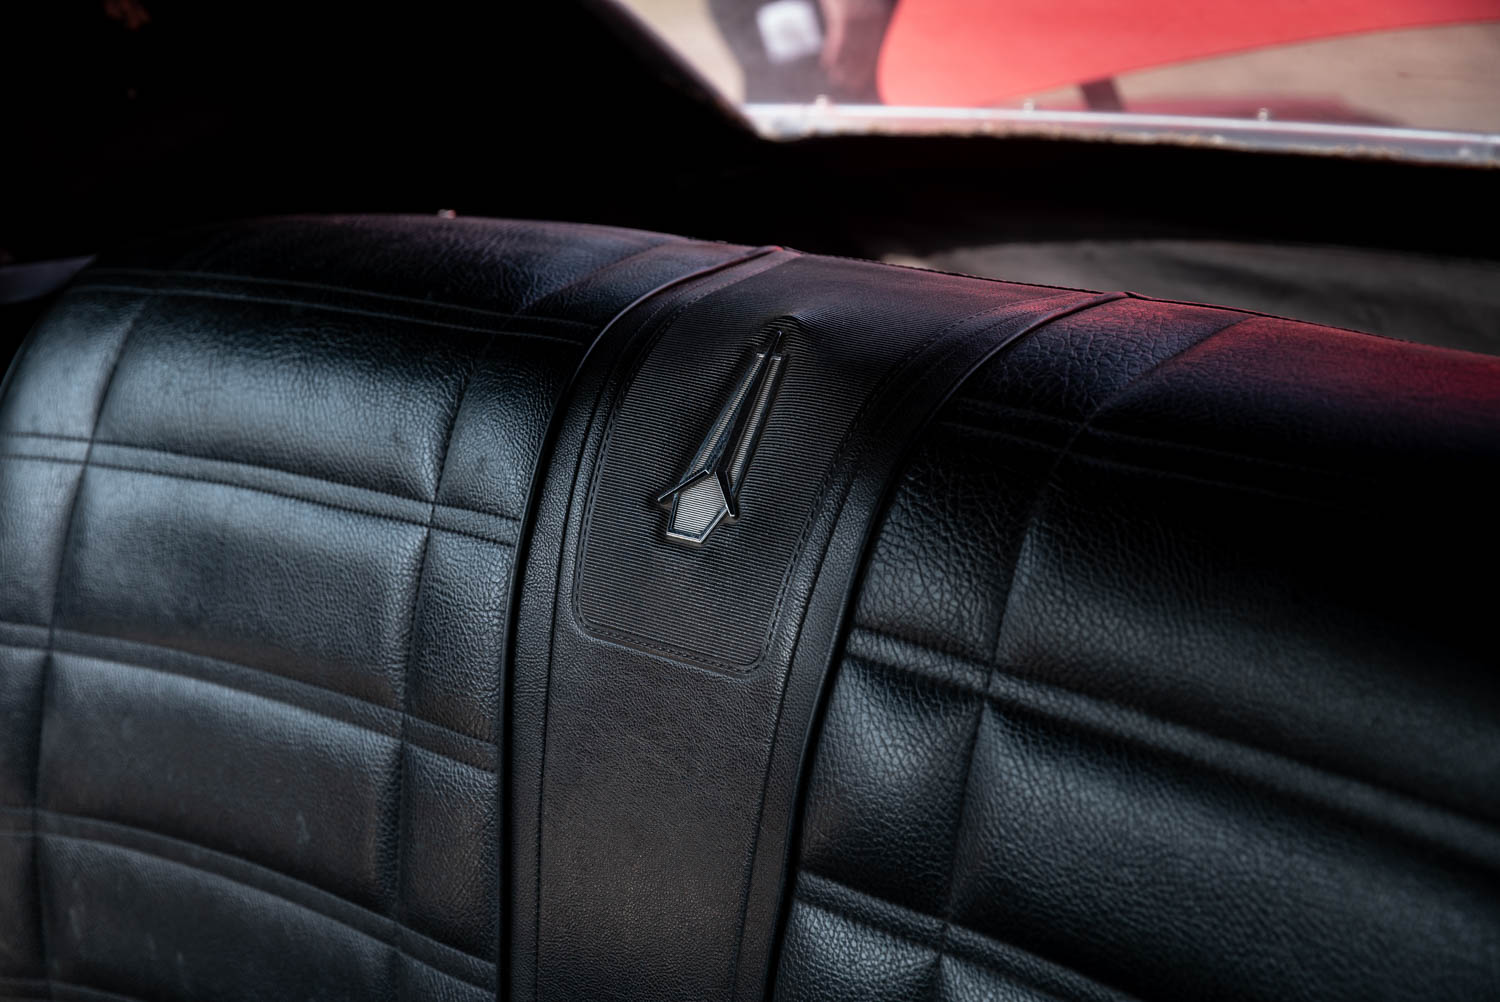 1969 Plymouth GTX back seat